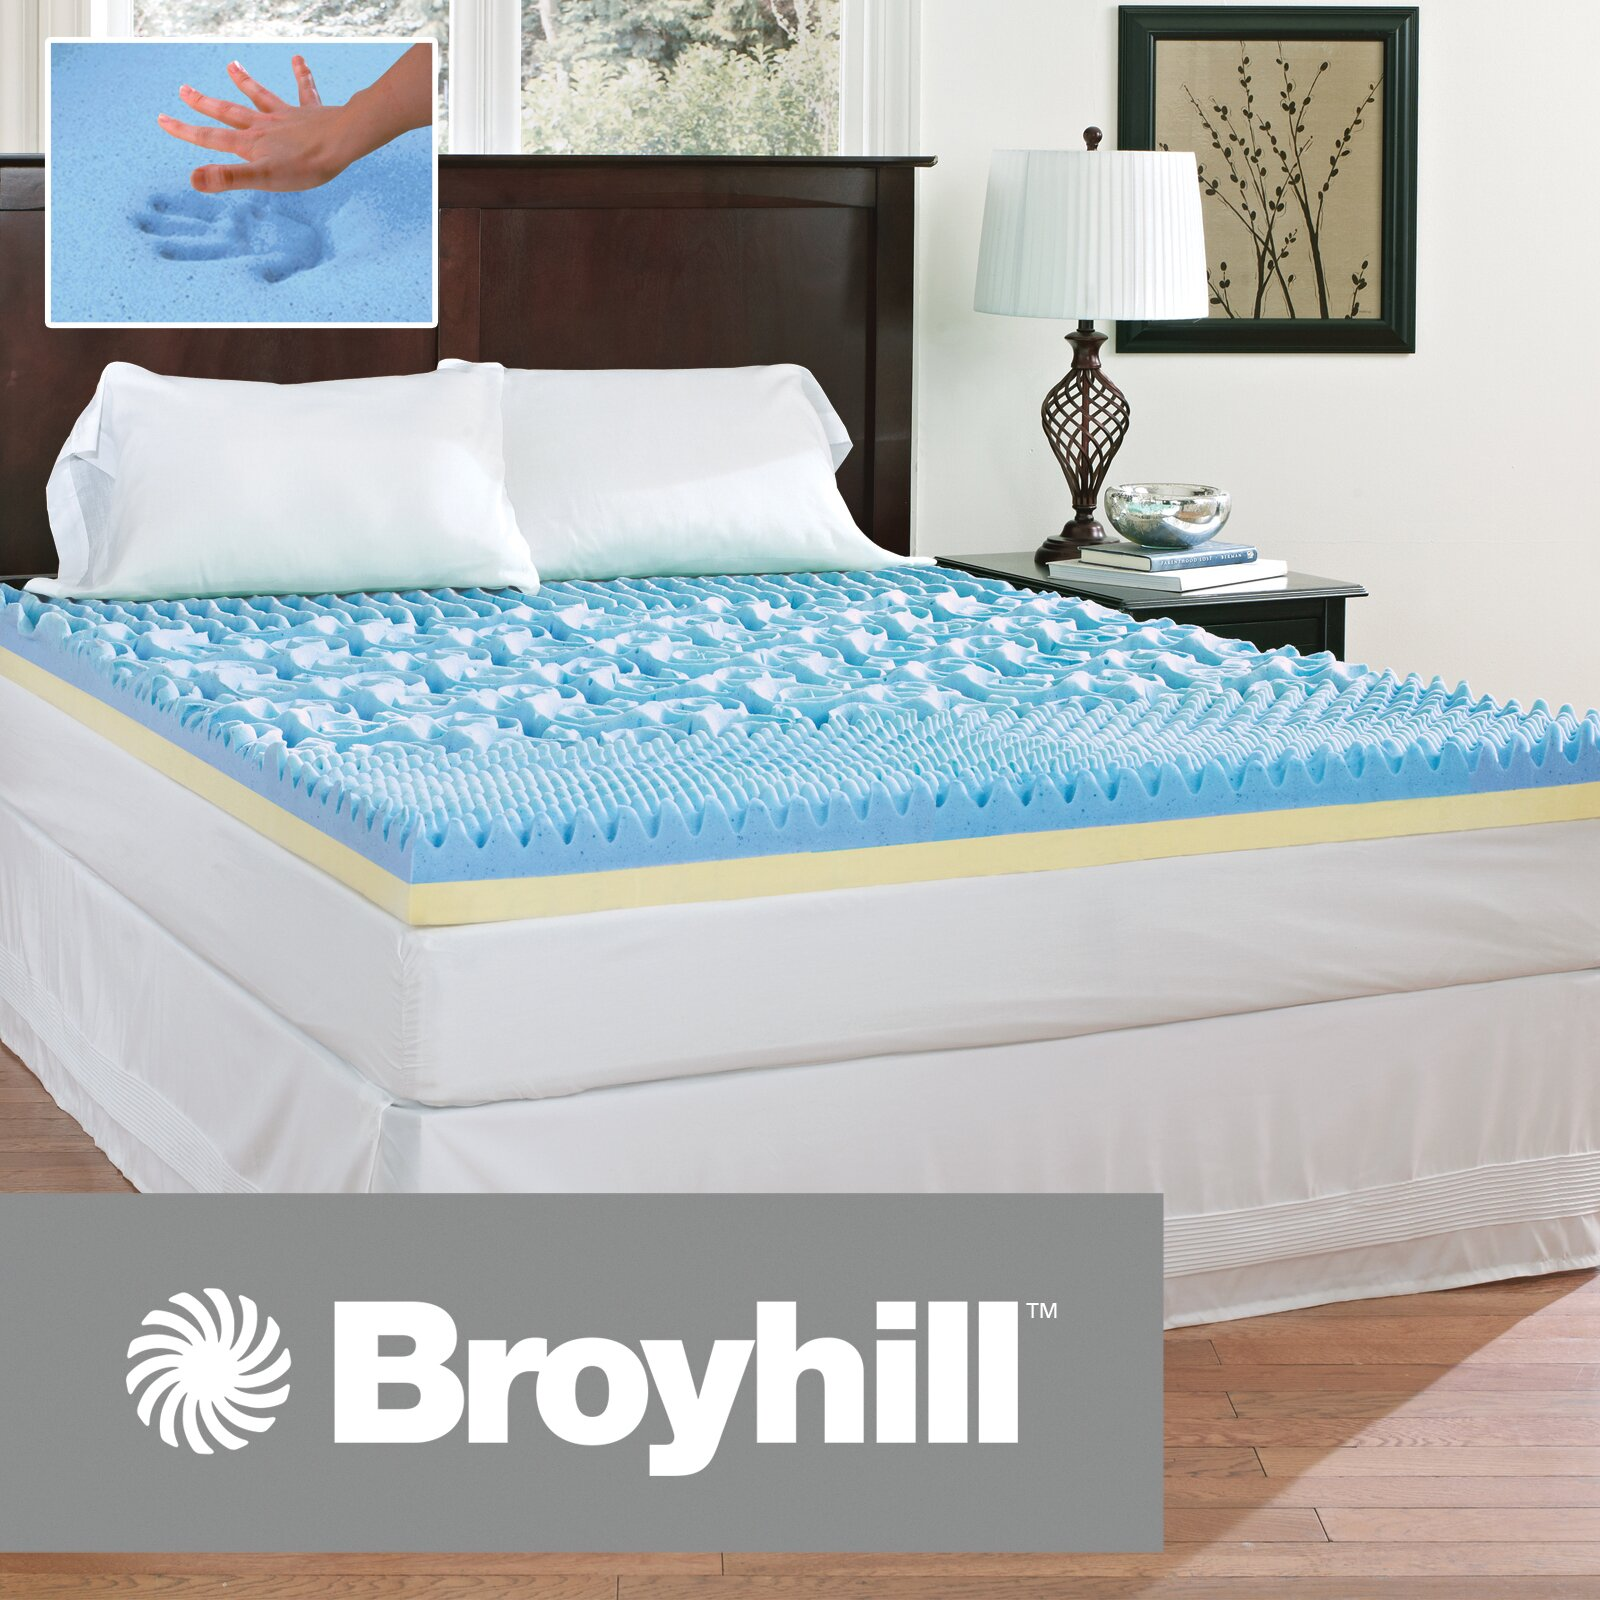 Broyhill174 4quot Gel Topper amp Reviews Wayfair : Broyhill2525C22525AE 4 Gel Topper IMTOPB401 from www.wayfair.com size 1600 x 1600 jpeg 533kB